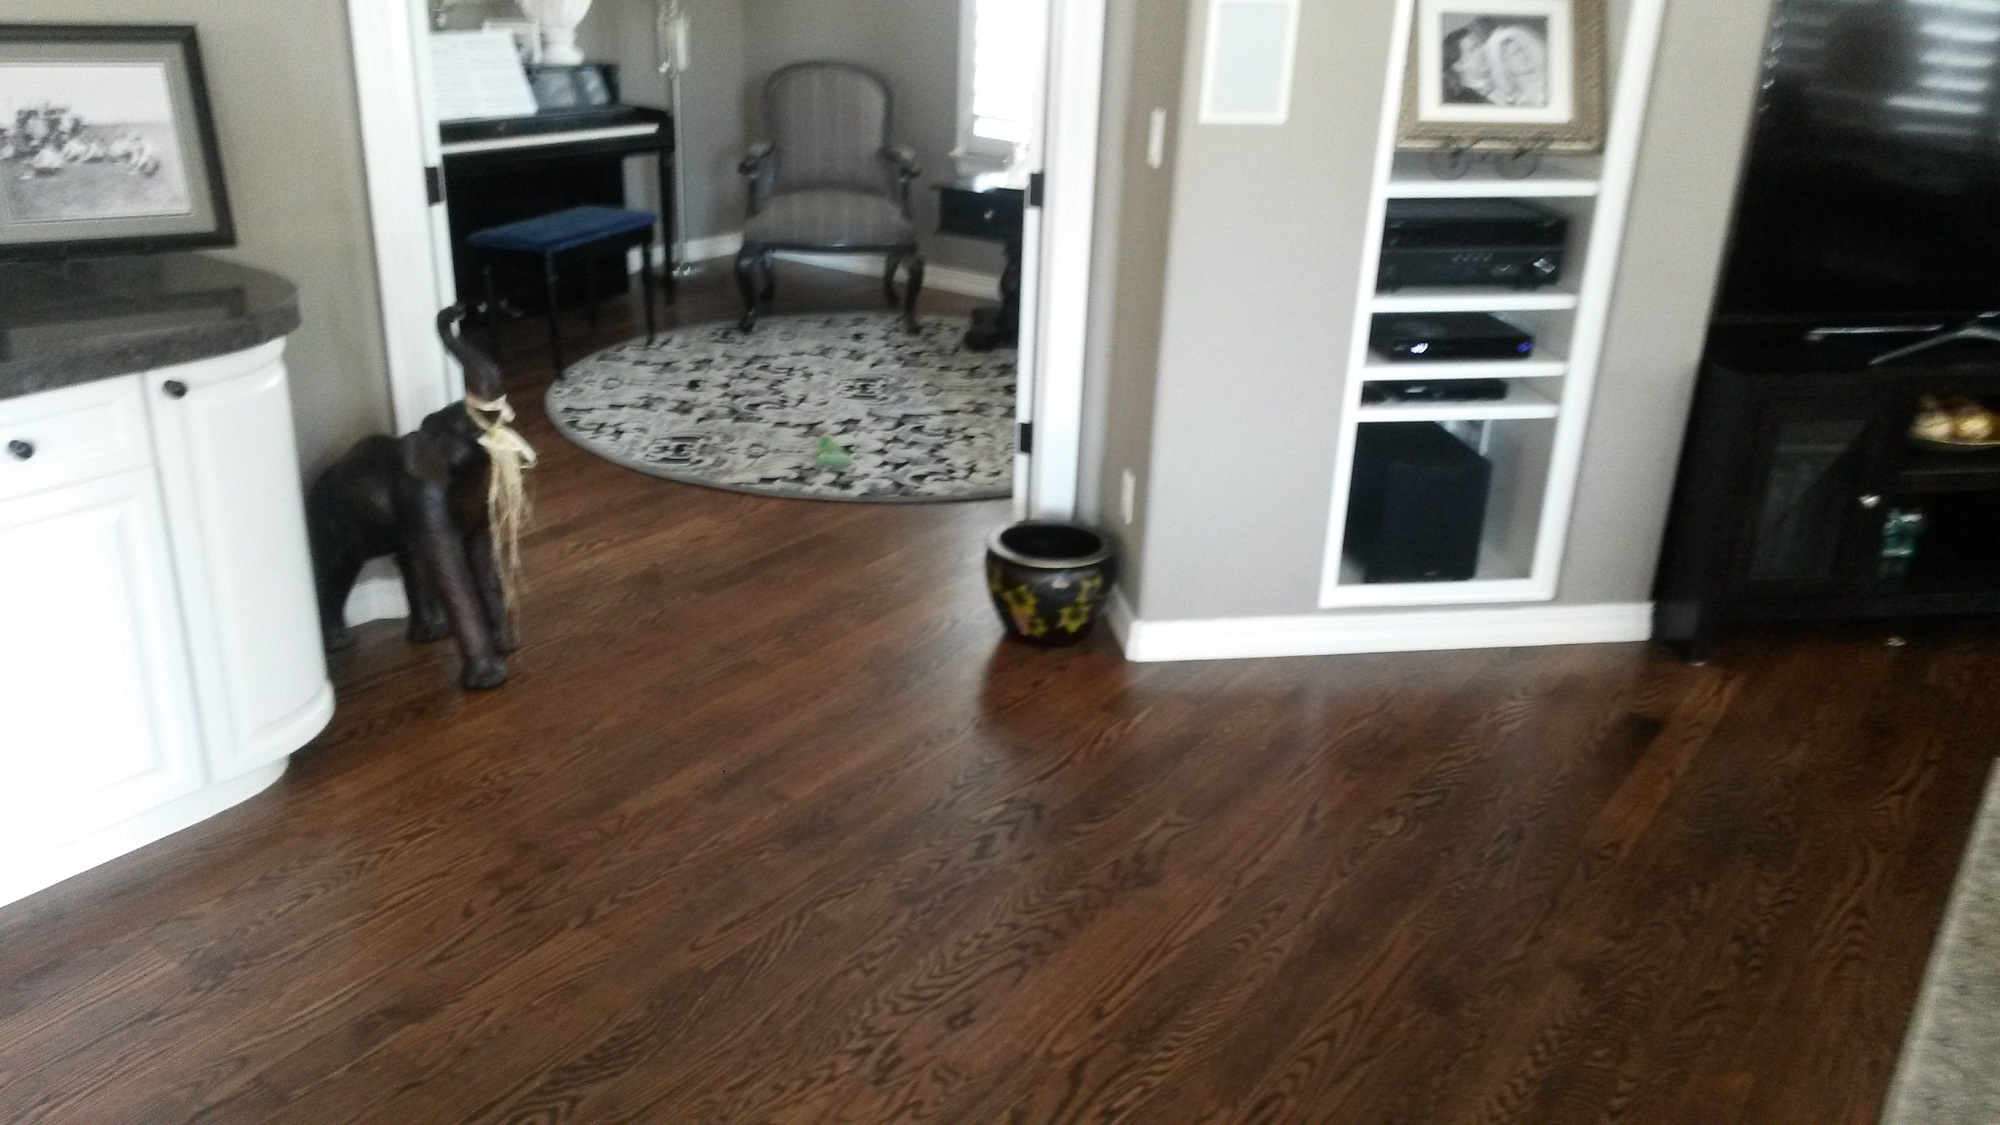 Bbb business profile probity hardwood floors trim inc cut tile at doorway removed tile and carpet to install red oak plank and dailygadgetfo Choice Image